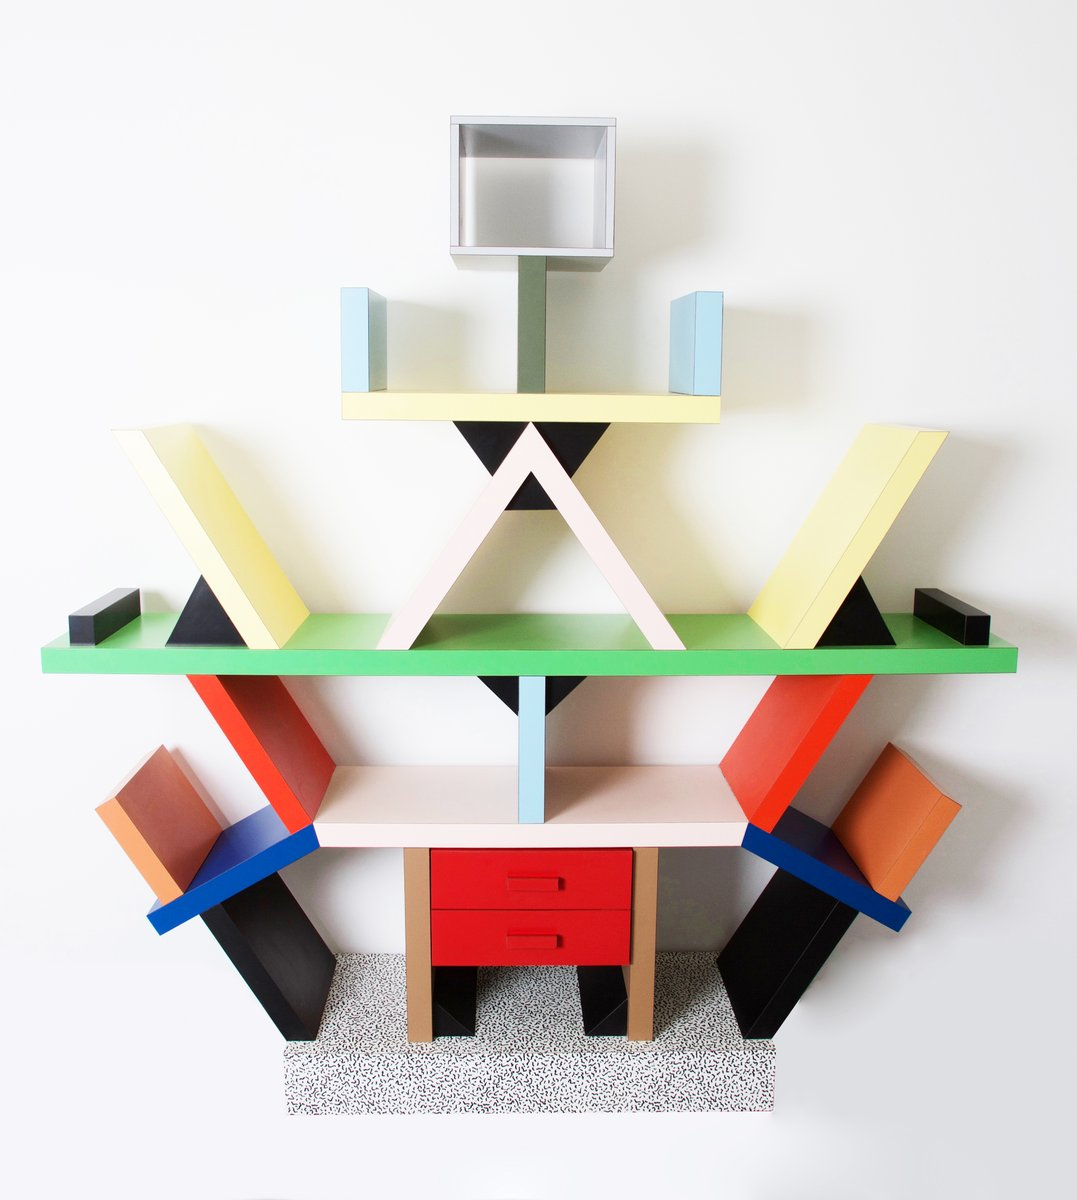 biblioth que carlton par ettore sottsass pour memphis italie 1981 en vente sur pamono. Black Bedroom Furniture Sets. Home Design Ideas